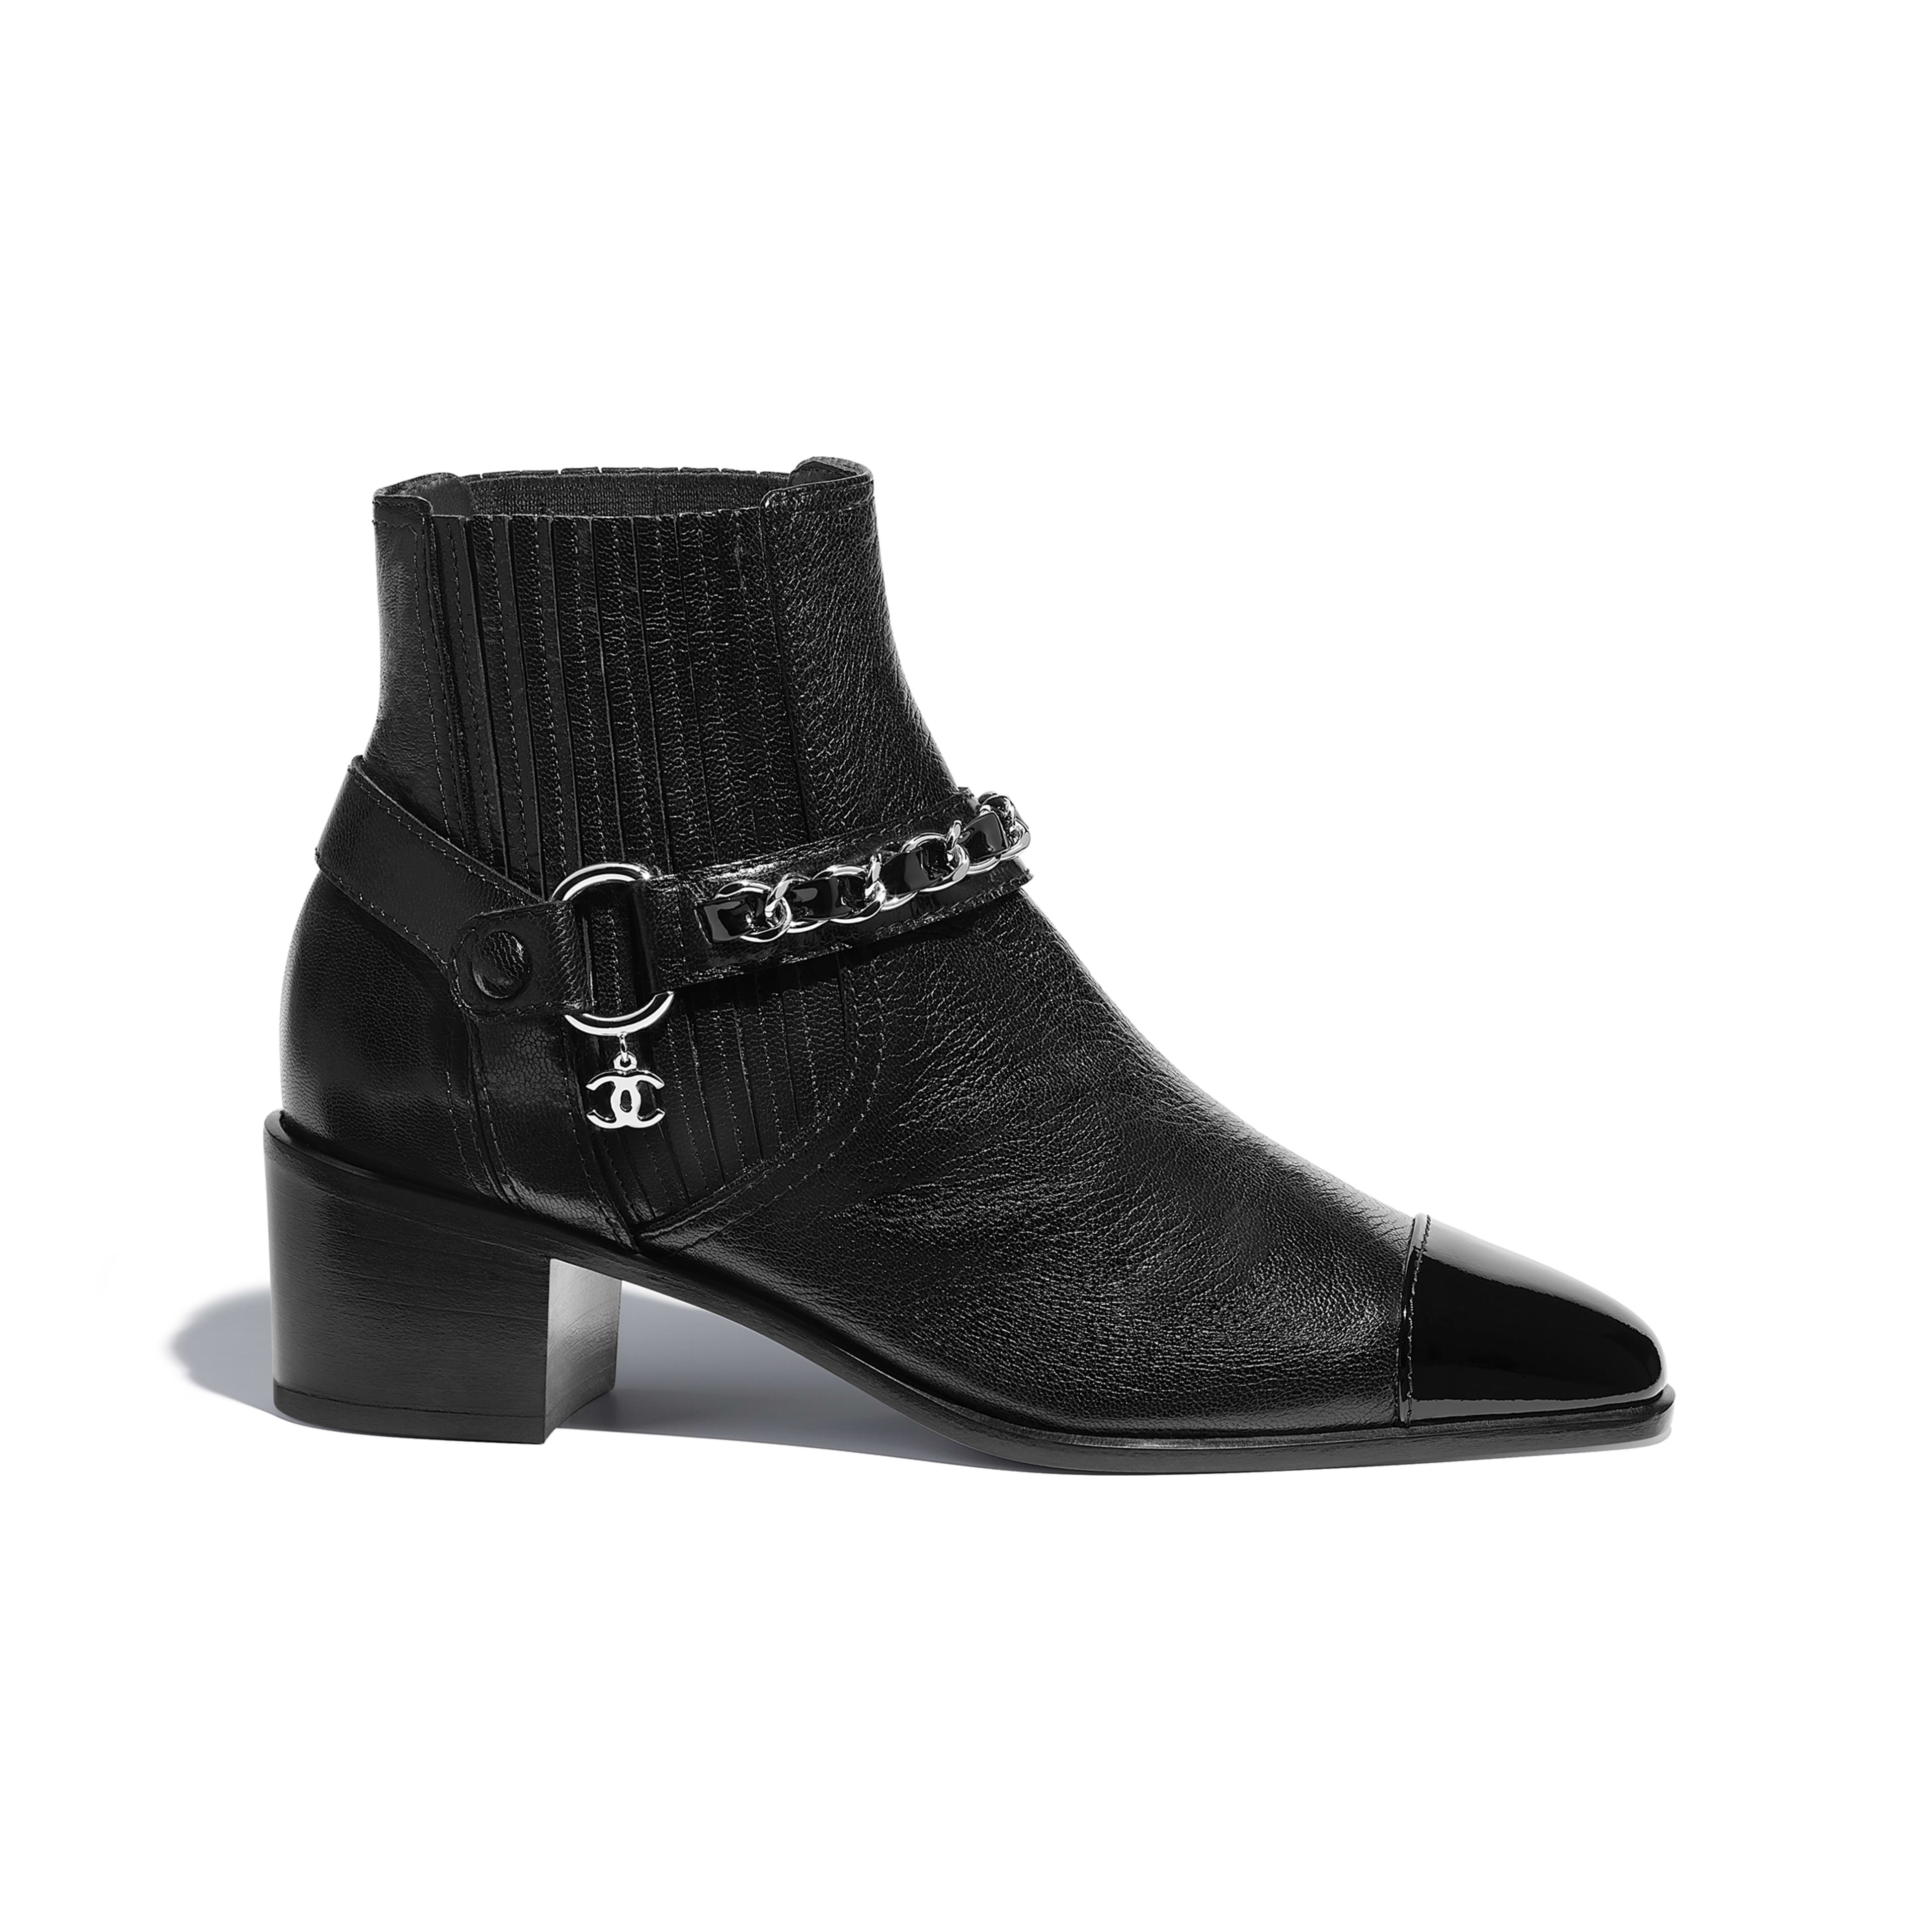 Short Boots - Black - Goatskin & Patent Calfskin - Default view - see full sized version